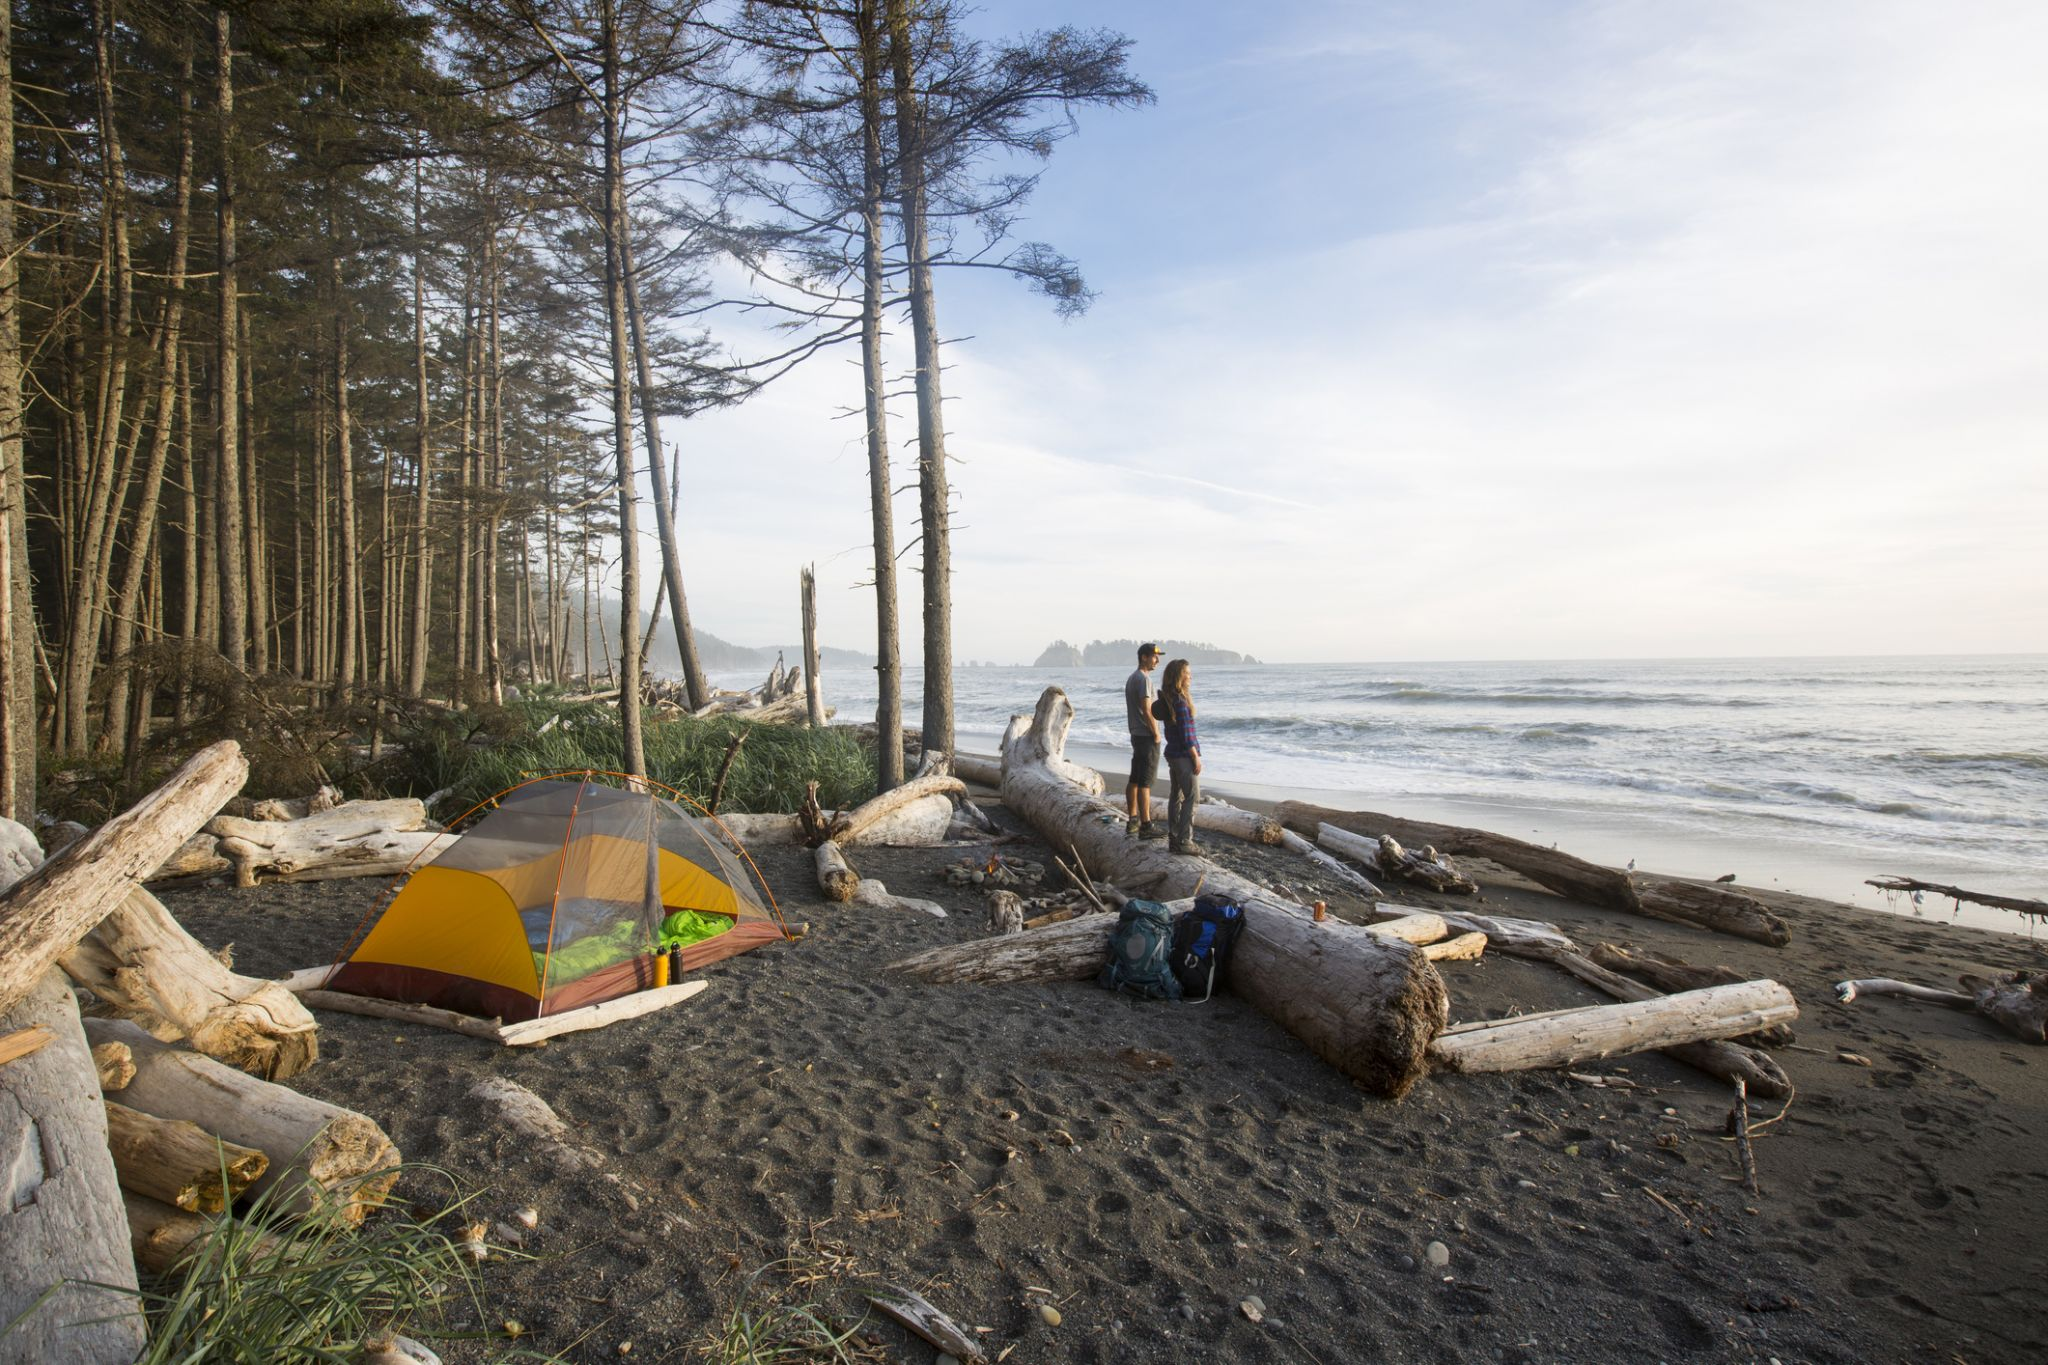 Get outdoors: Here's how to camp, recreate safely in Washington during COVID-19 pandemic